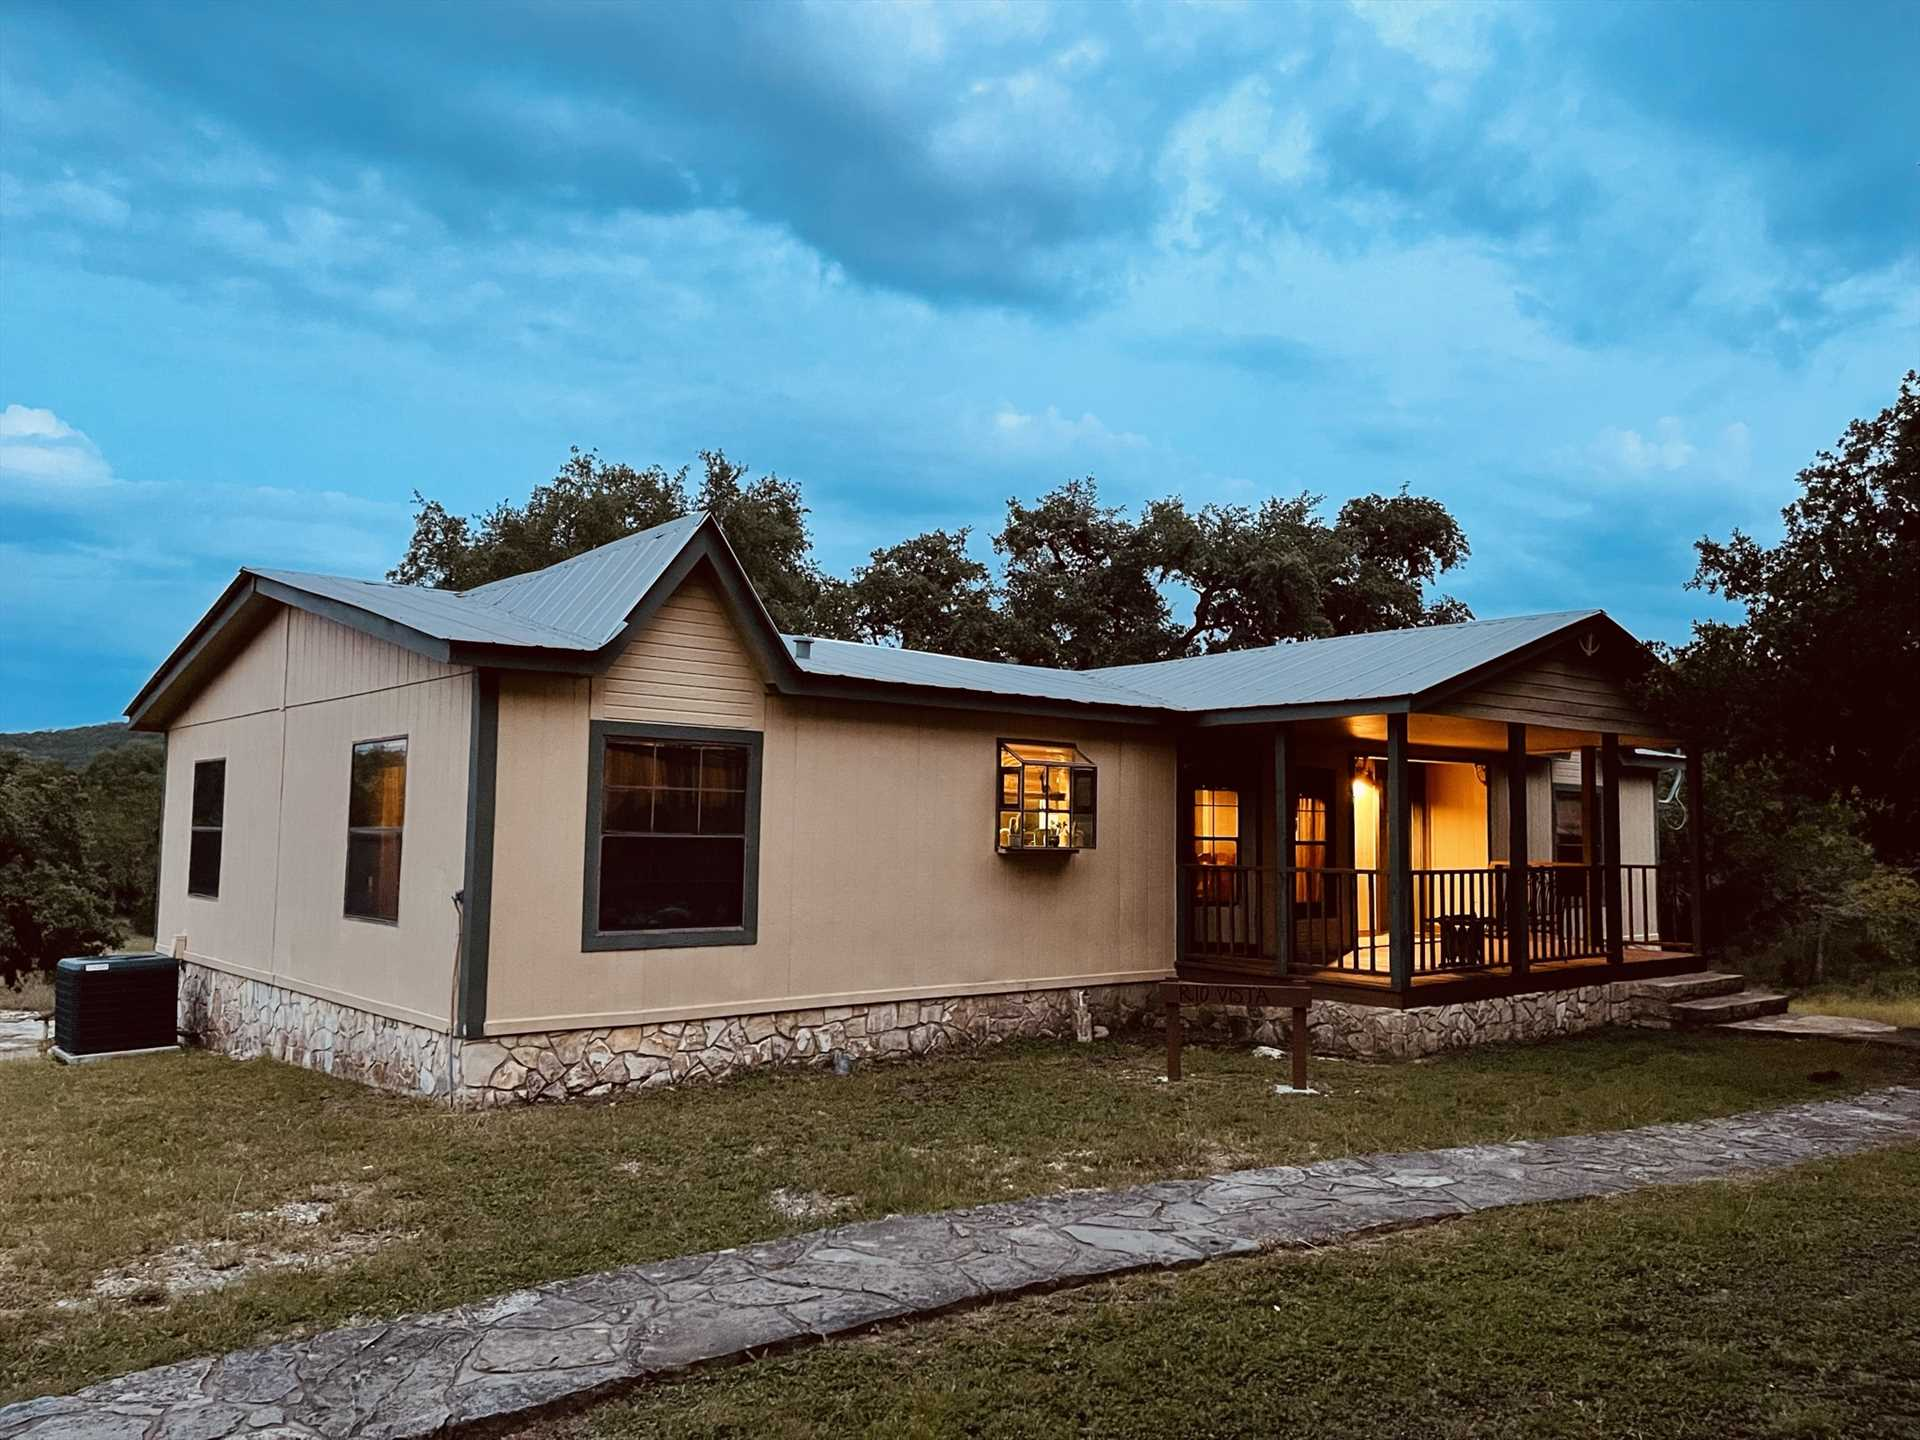 A cozy front porch, an enormous deck out back, and a charcoal grill are just some of the outdoor amenities you'll enjoy at Rio Vista the second of six guest quarters at the Retreat!